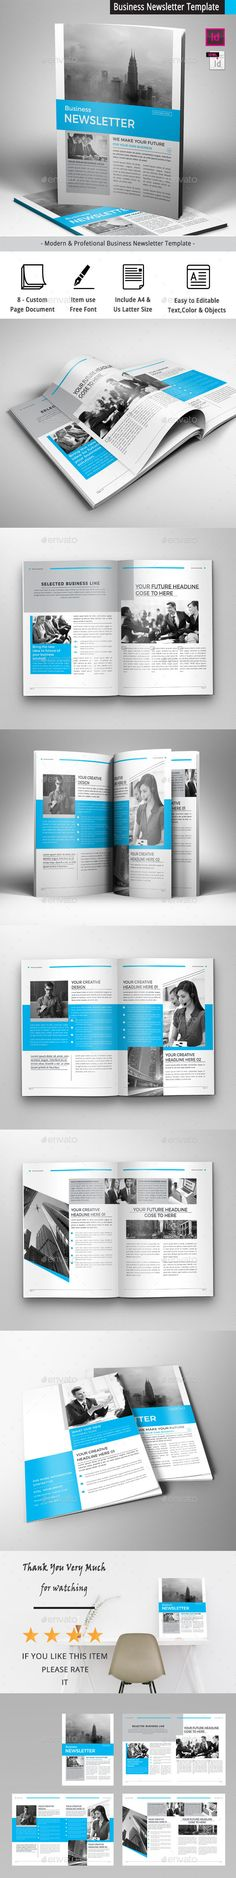 Business Newsletter Template Template per newsletter, Loghi e Font - free business newsletter templates